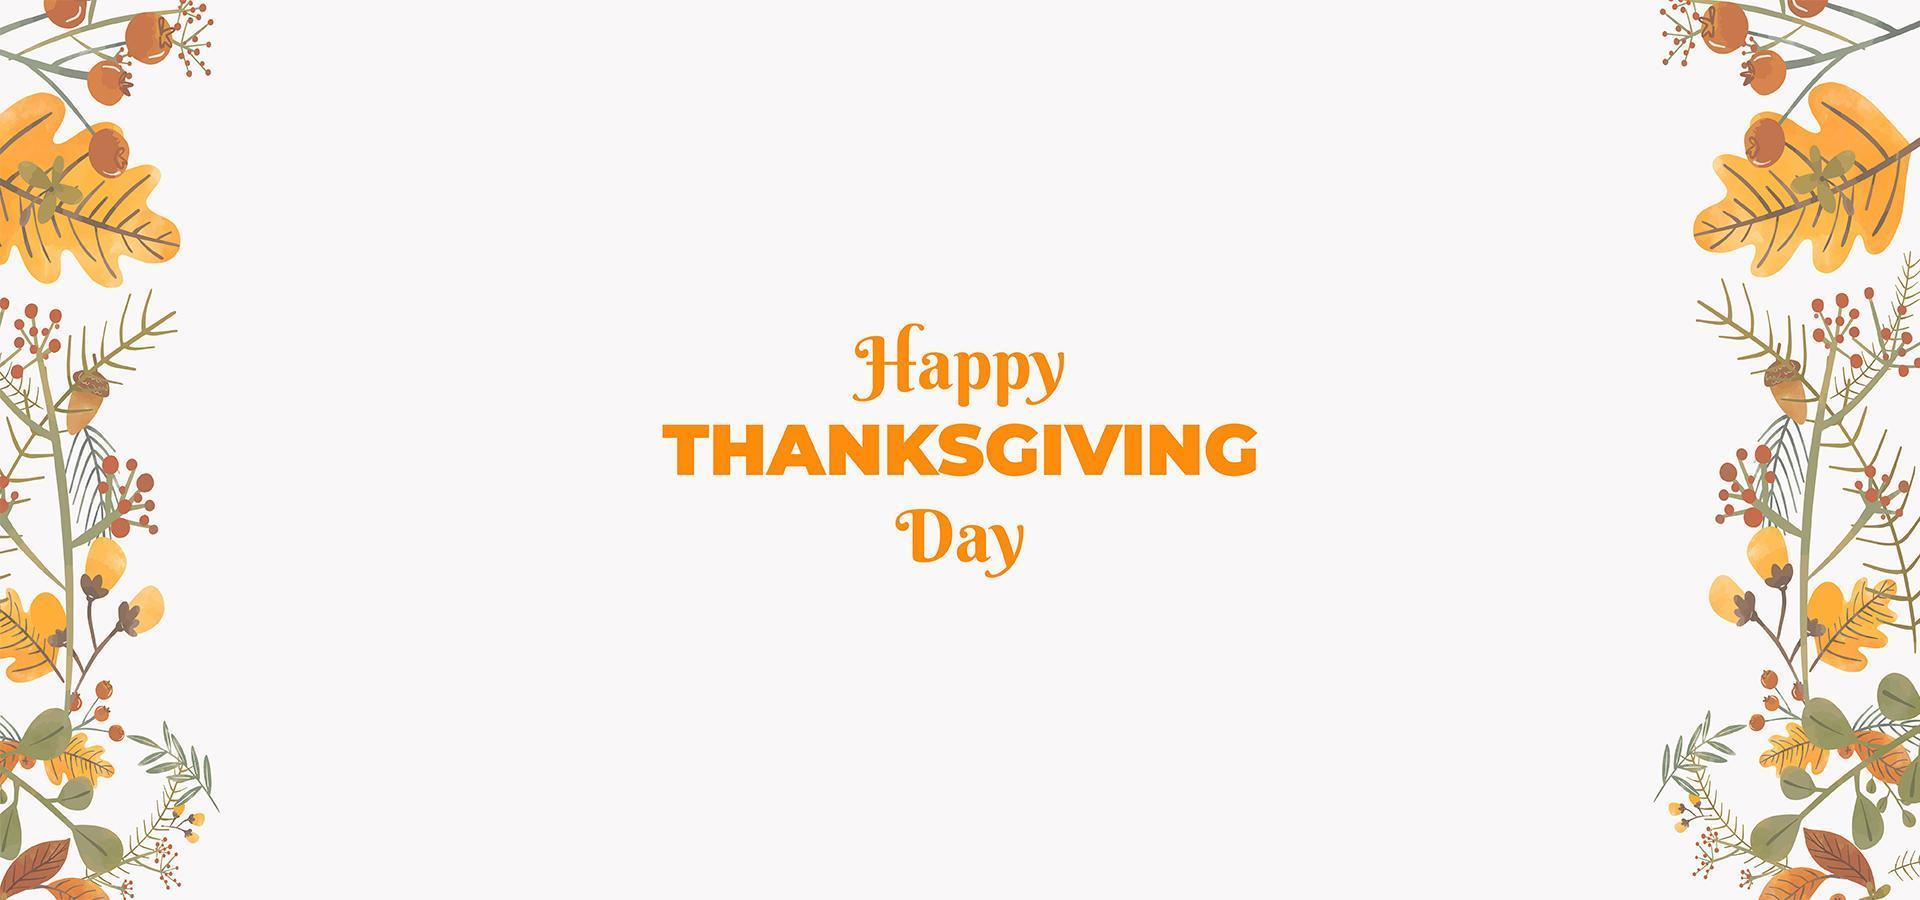 Simple Thanksgiving Day Celebrations Wallpaper